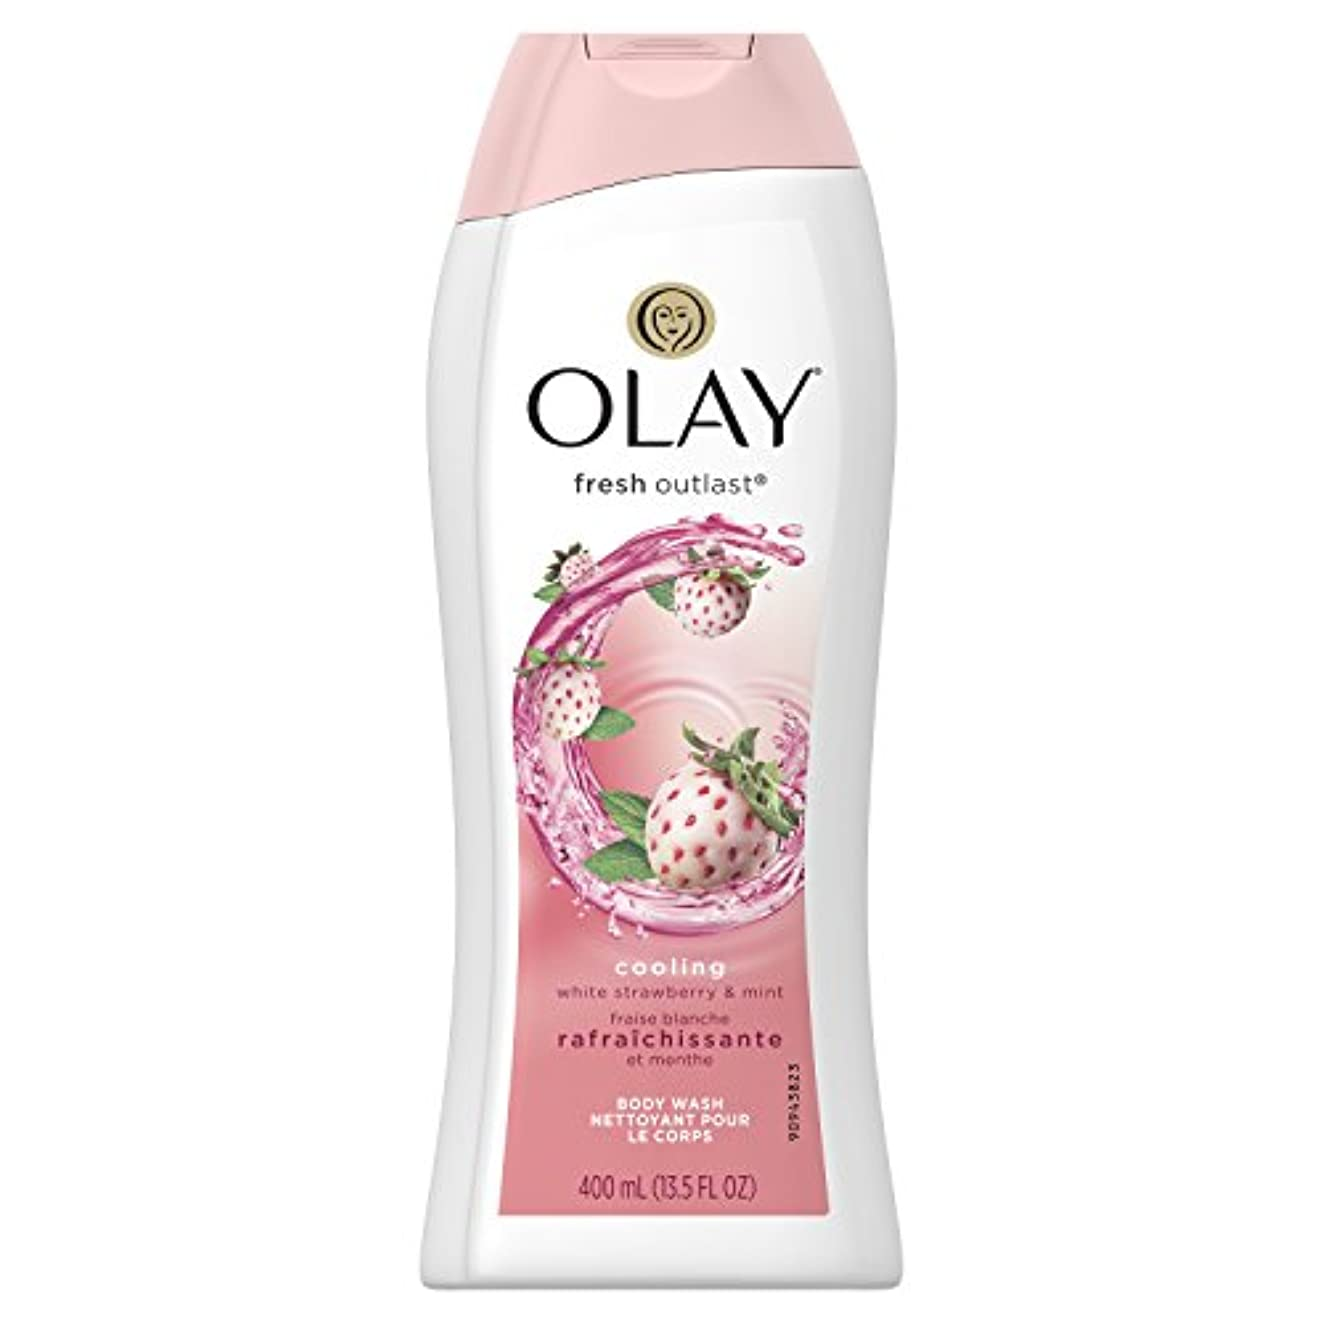 未知のストレスの多い注目すべきFresh Outlast Body Wash Cooling white Strawberry & Mint